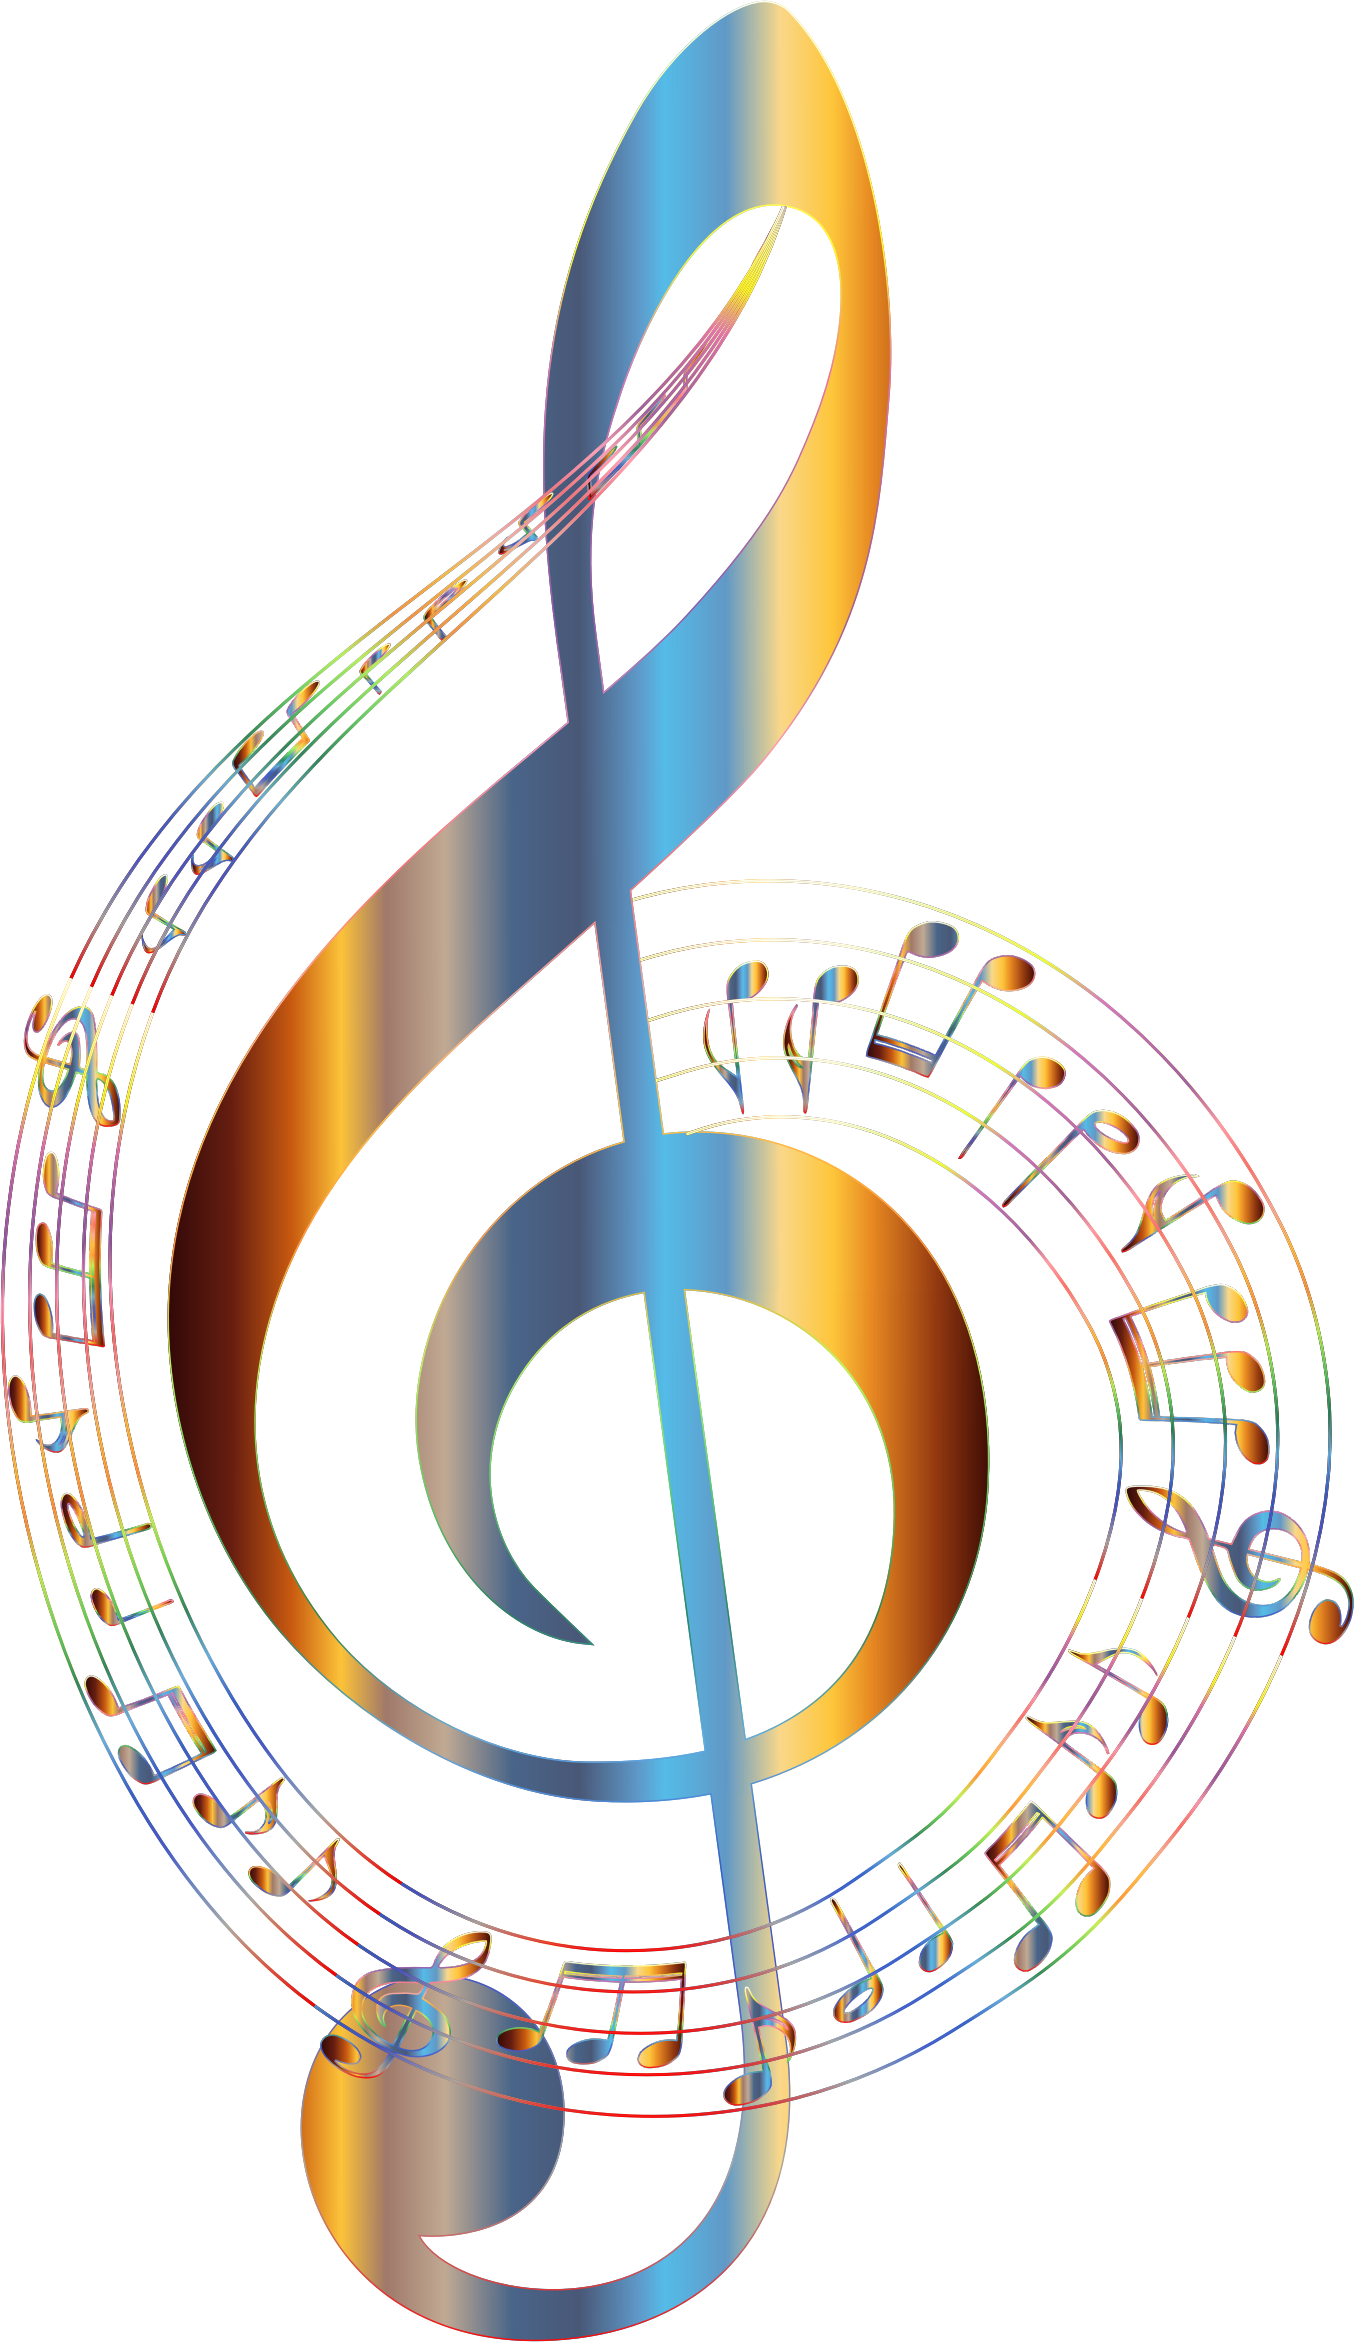 Flourish music notes png. Chromatic musical typography no